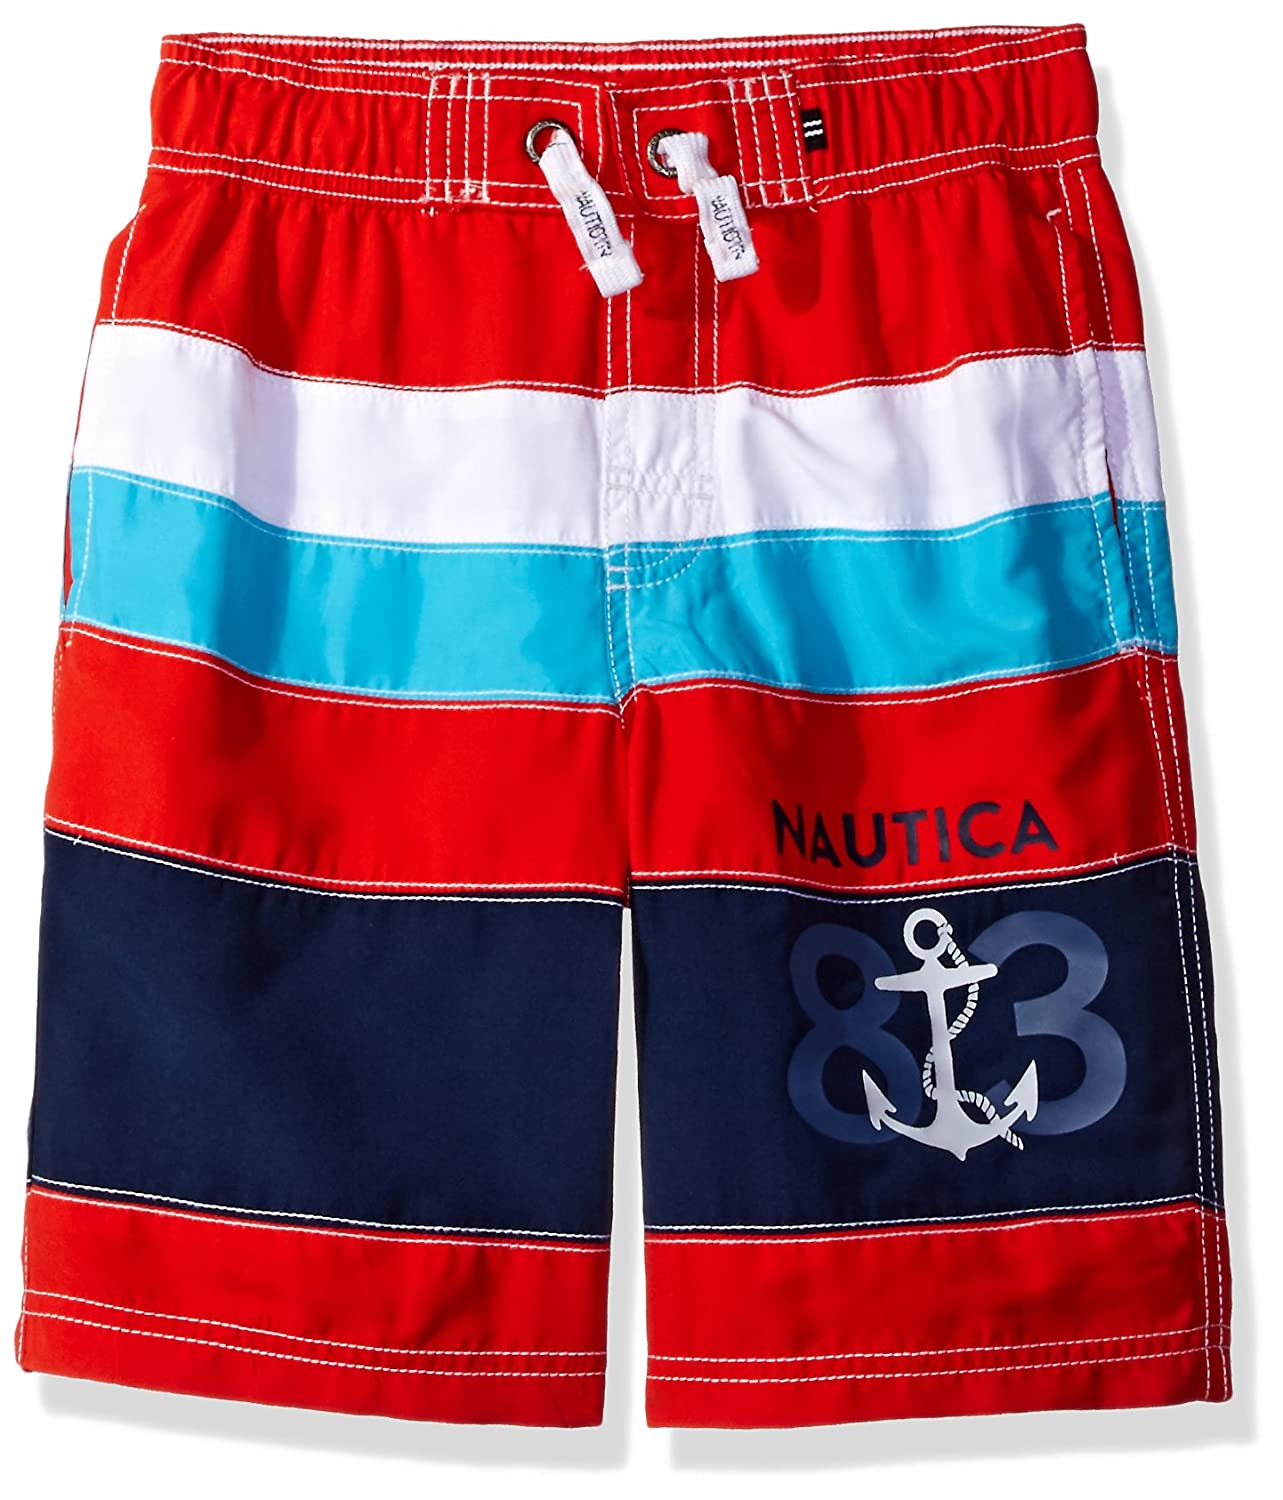 Nautica Boys Color Block Swim Trunk Scarlet Extra Large (7X) N468205Q